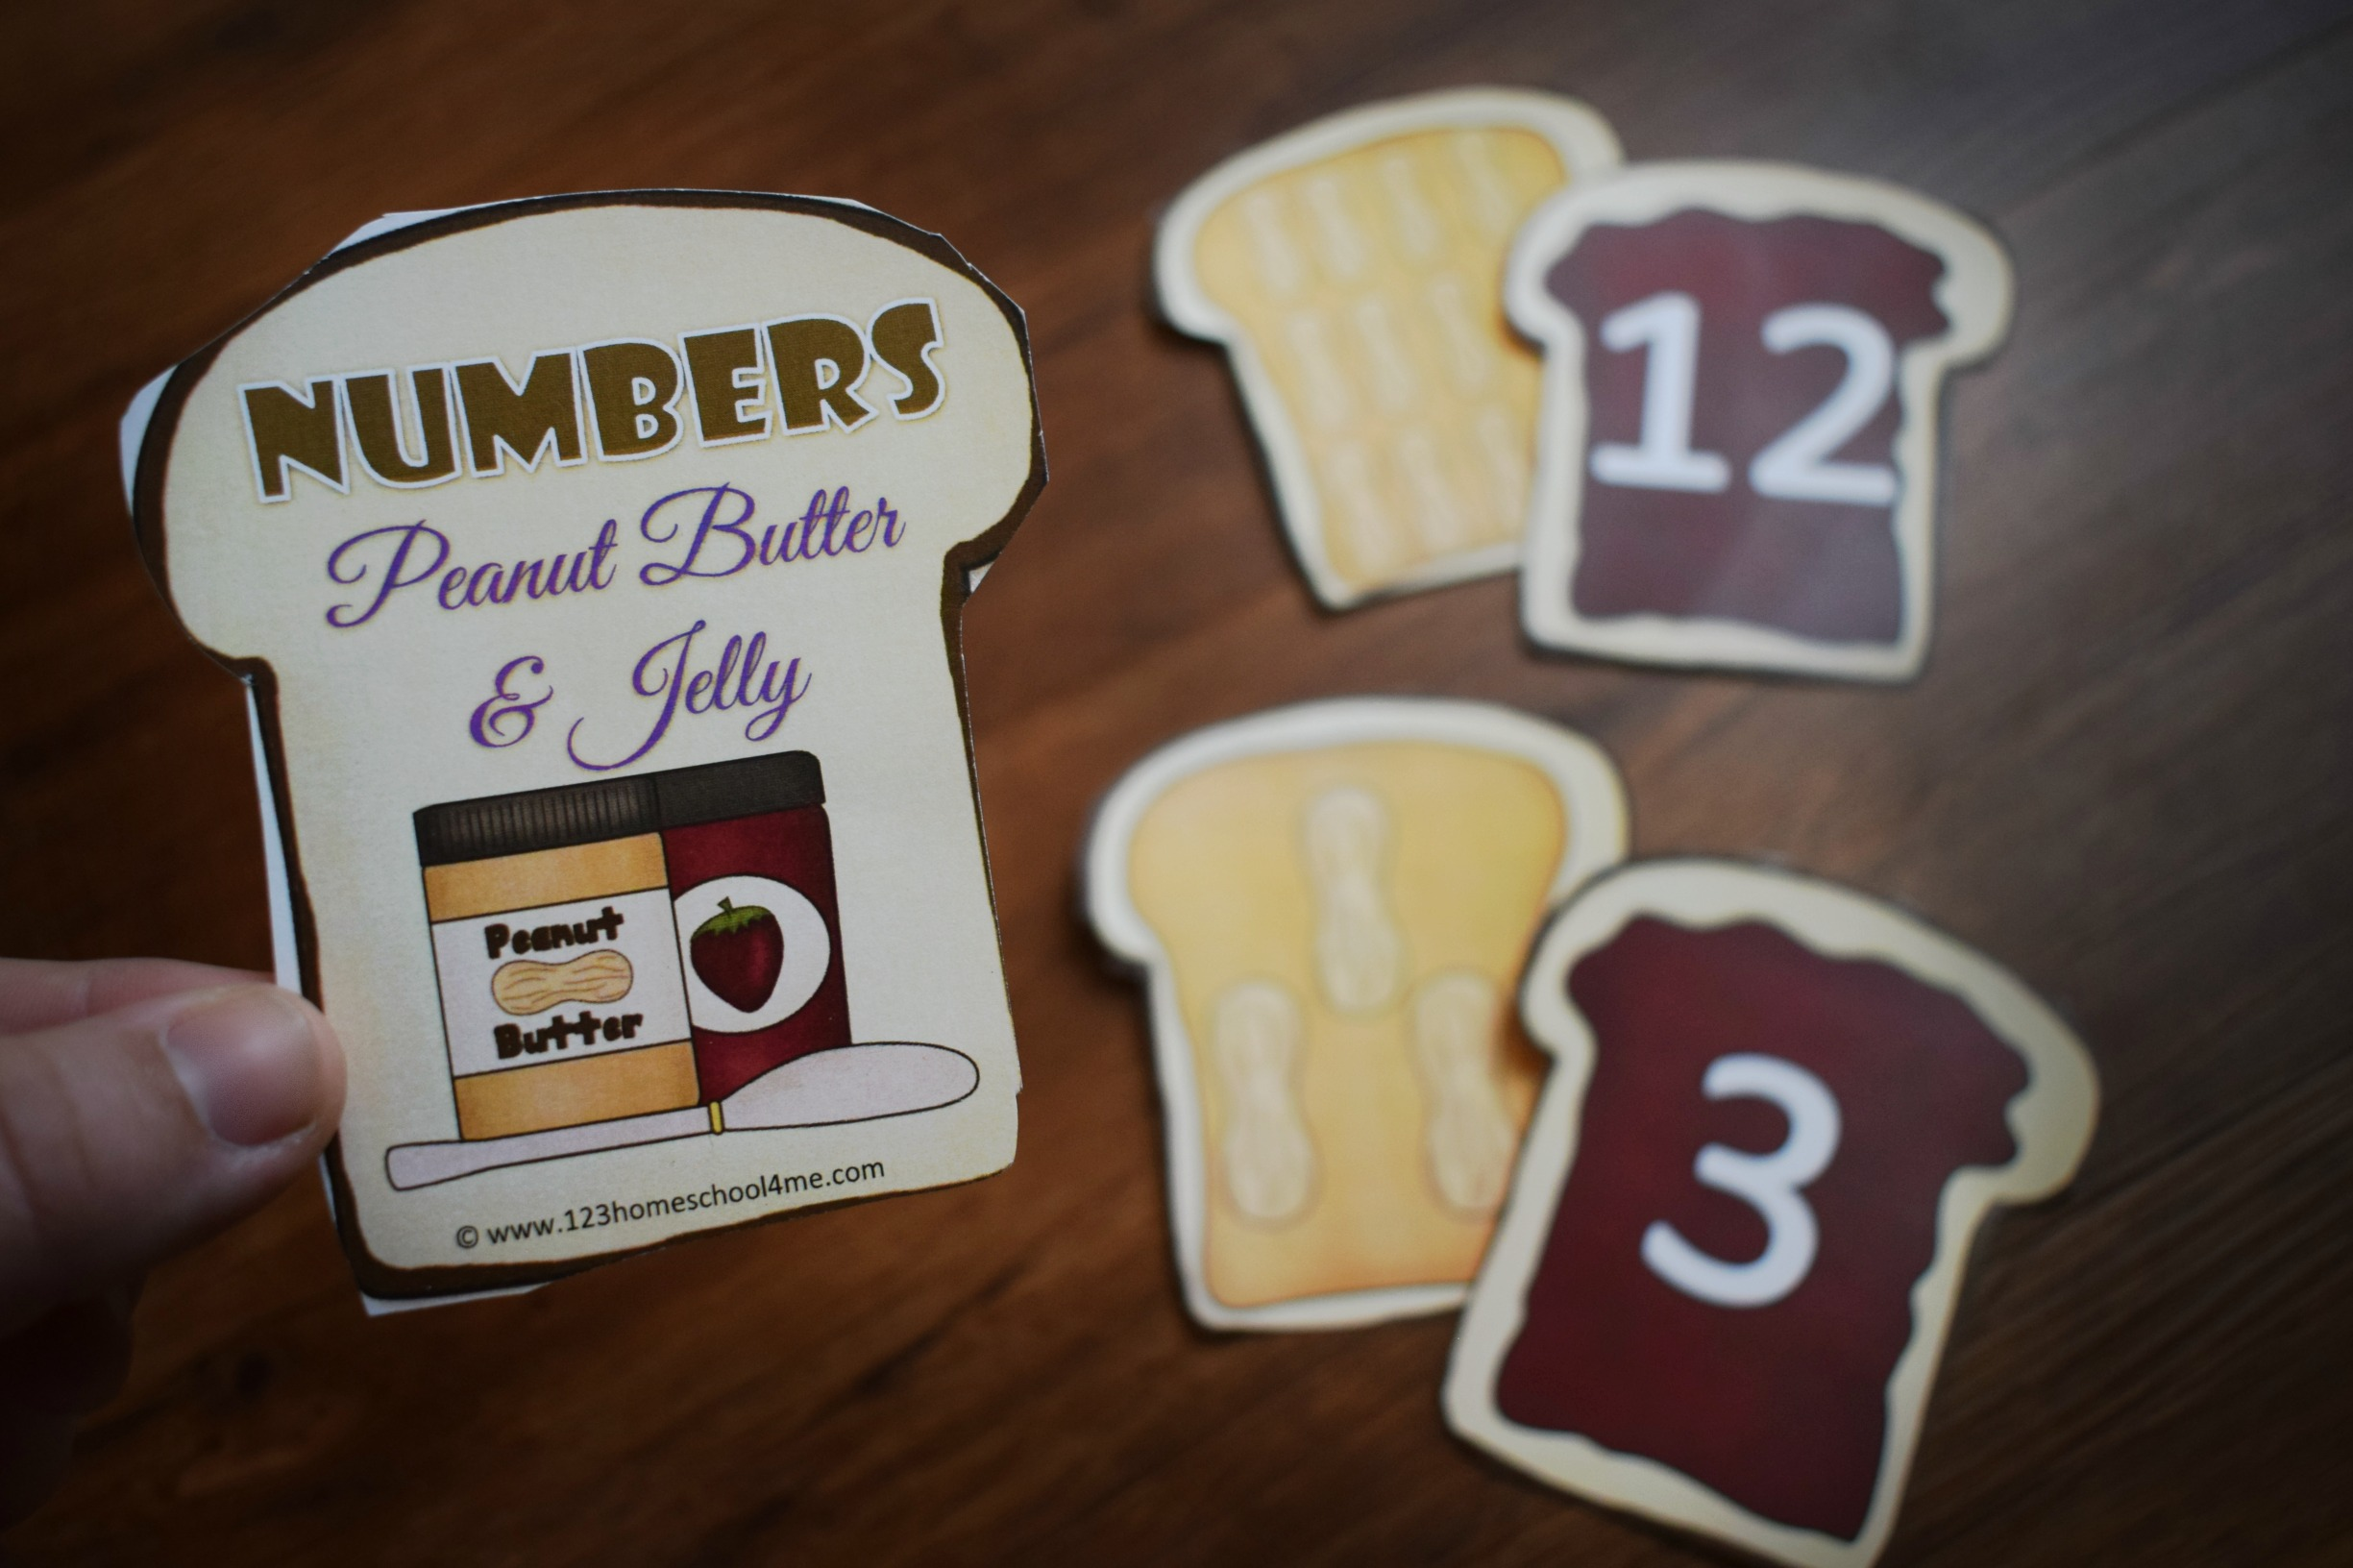 Count And Match Peanut Butter And Jelly Sandwiches